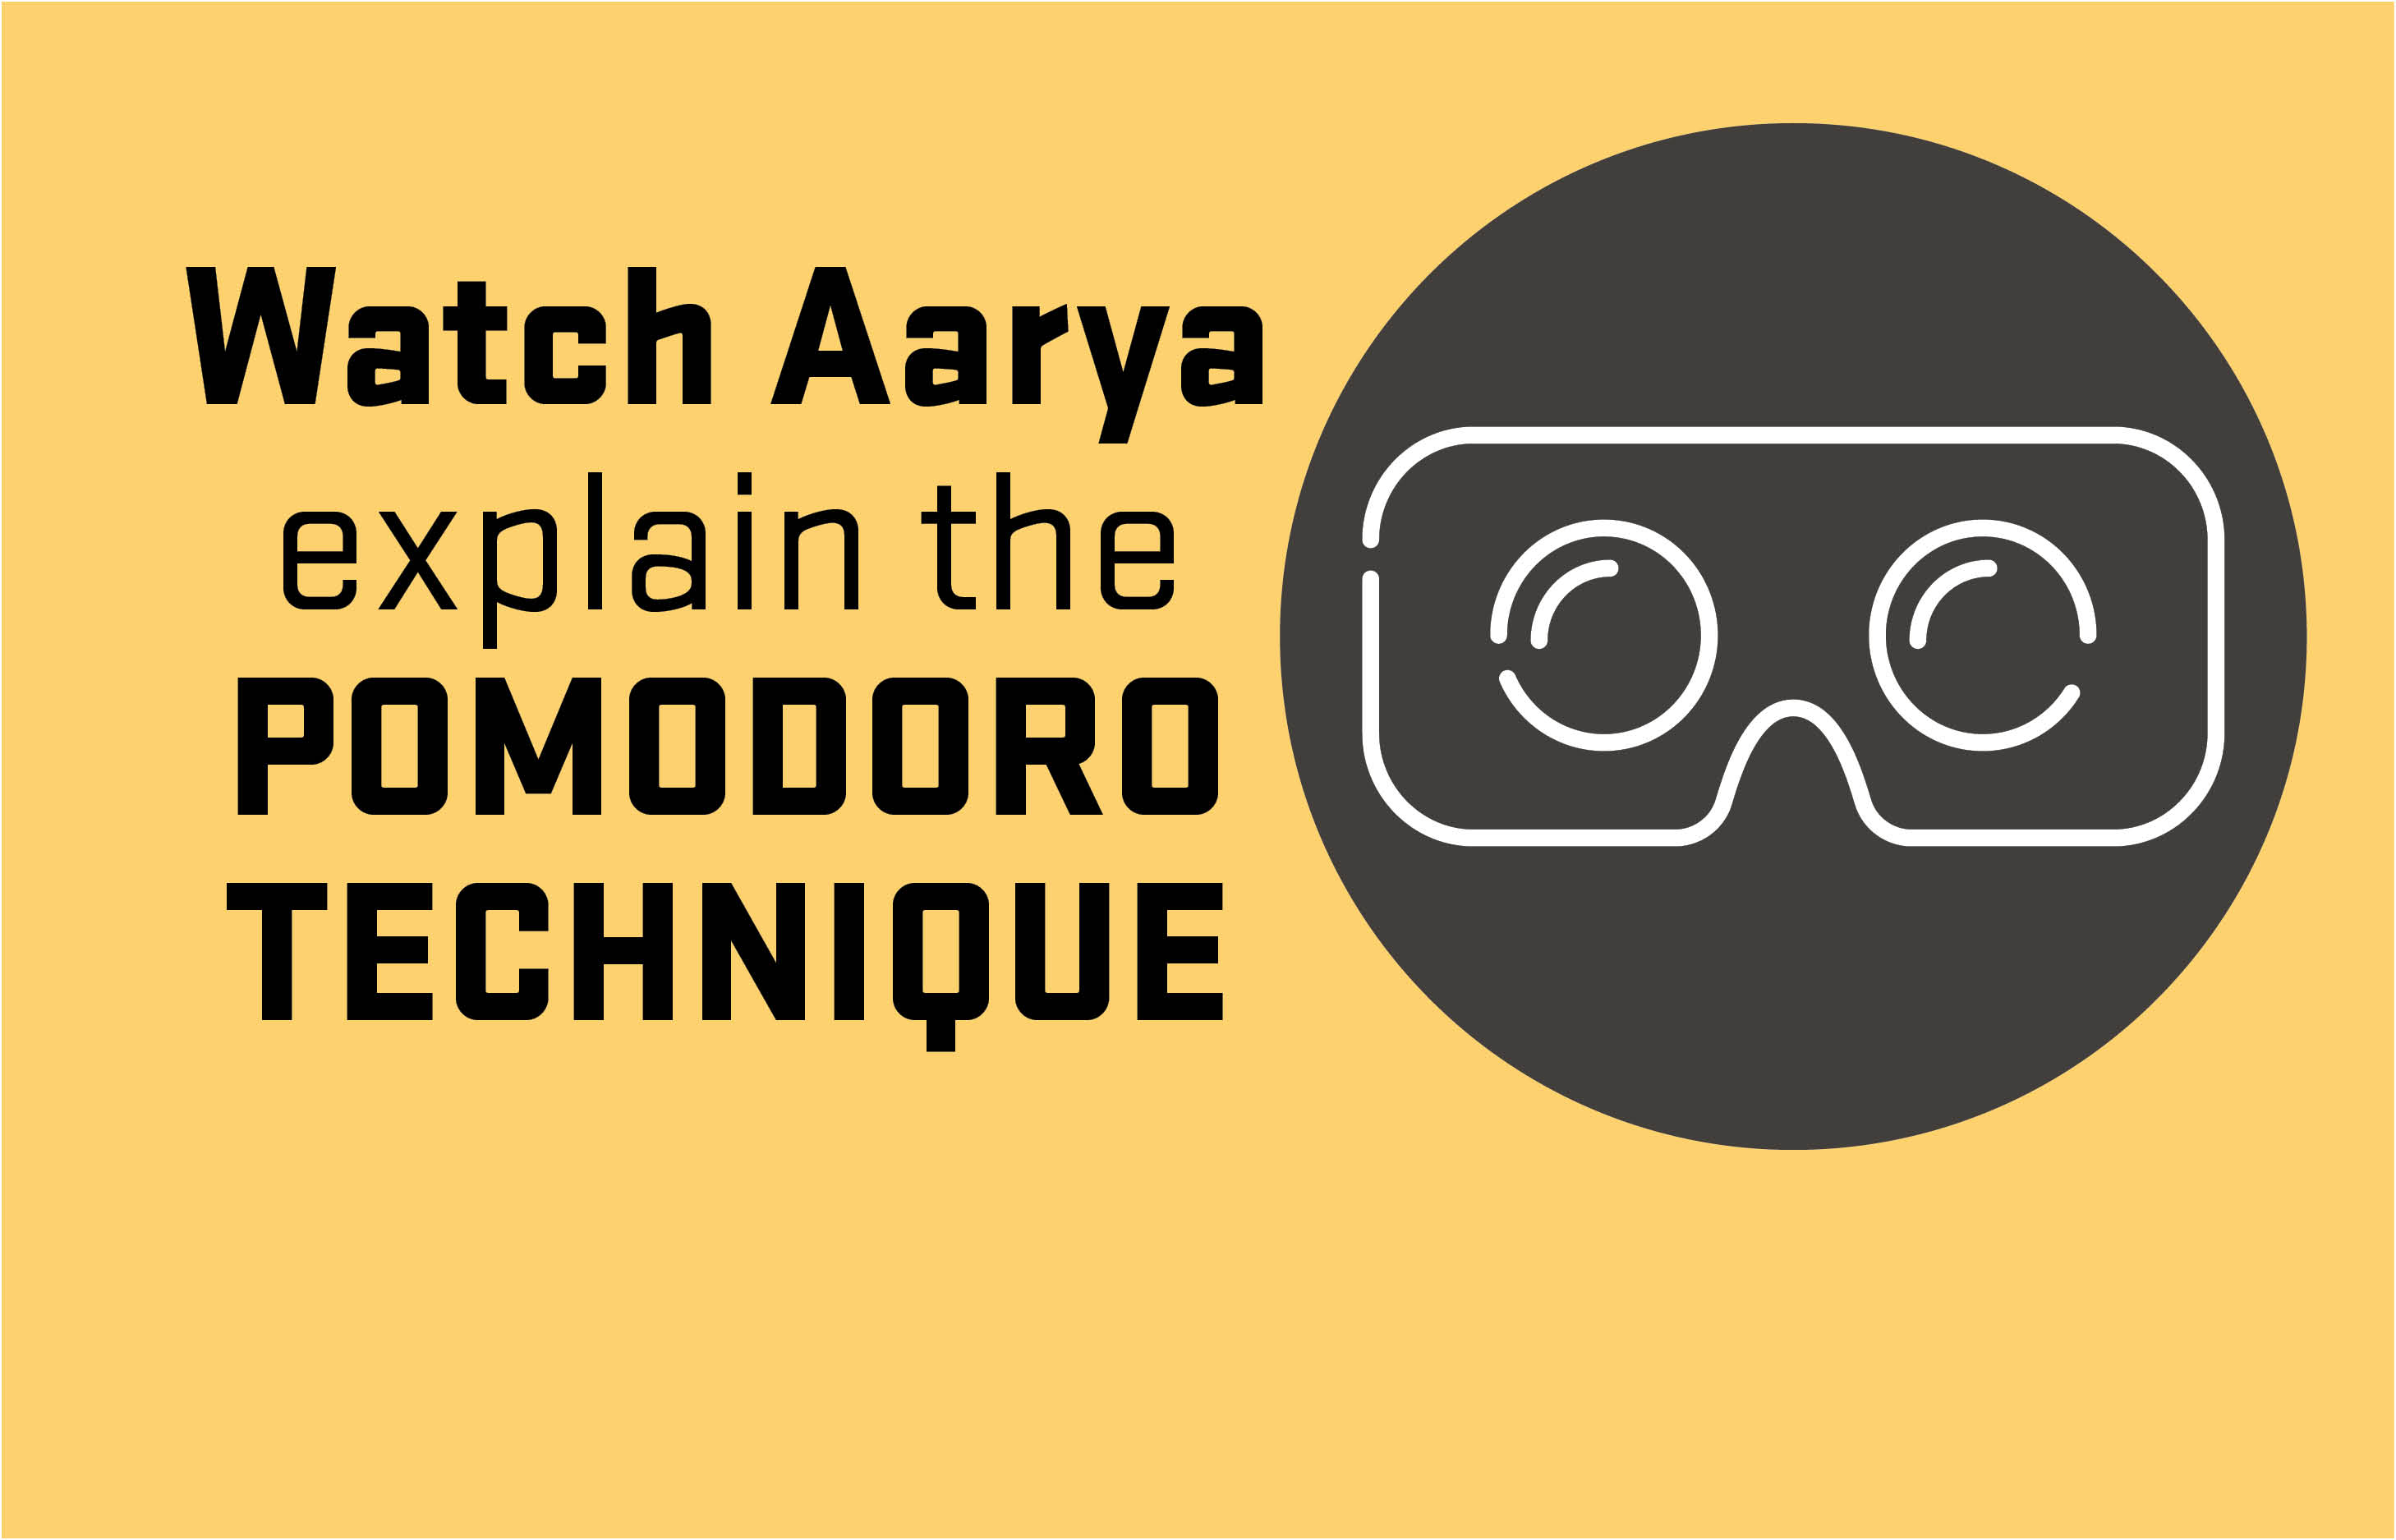 Watch Aarya explain the Pomodoro Technique